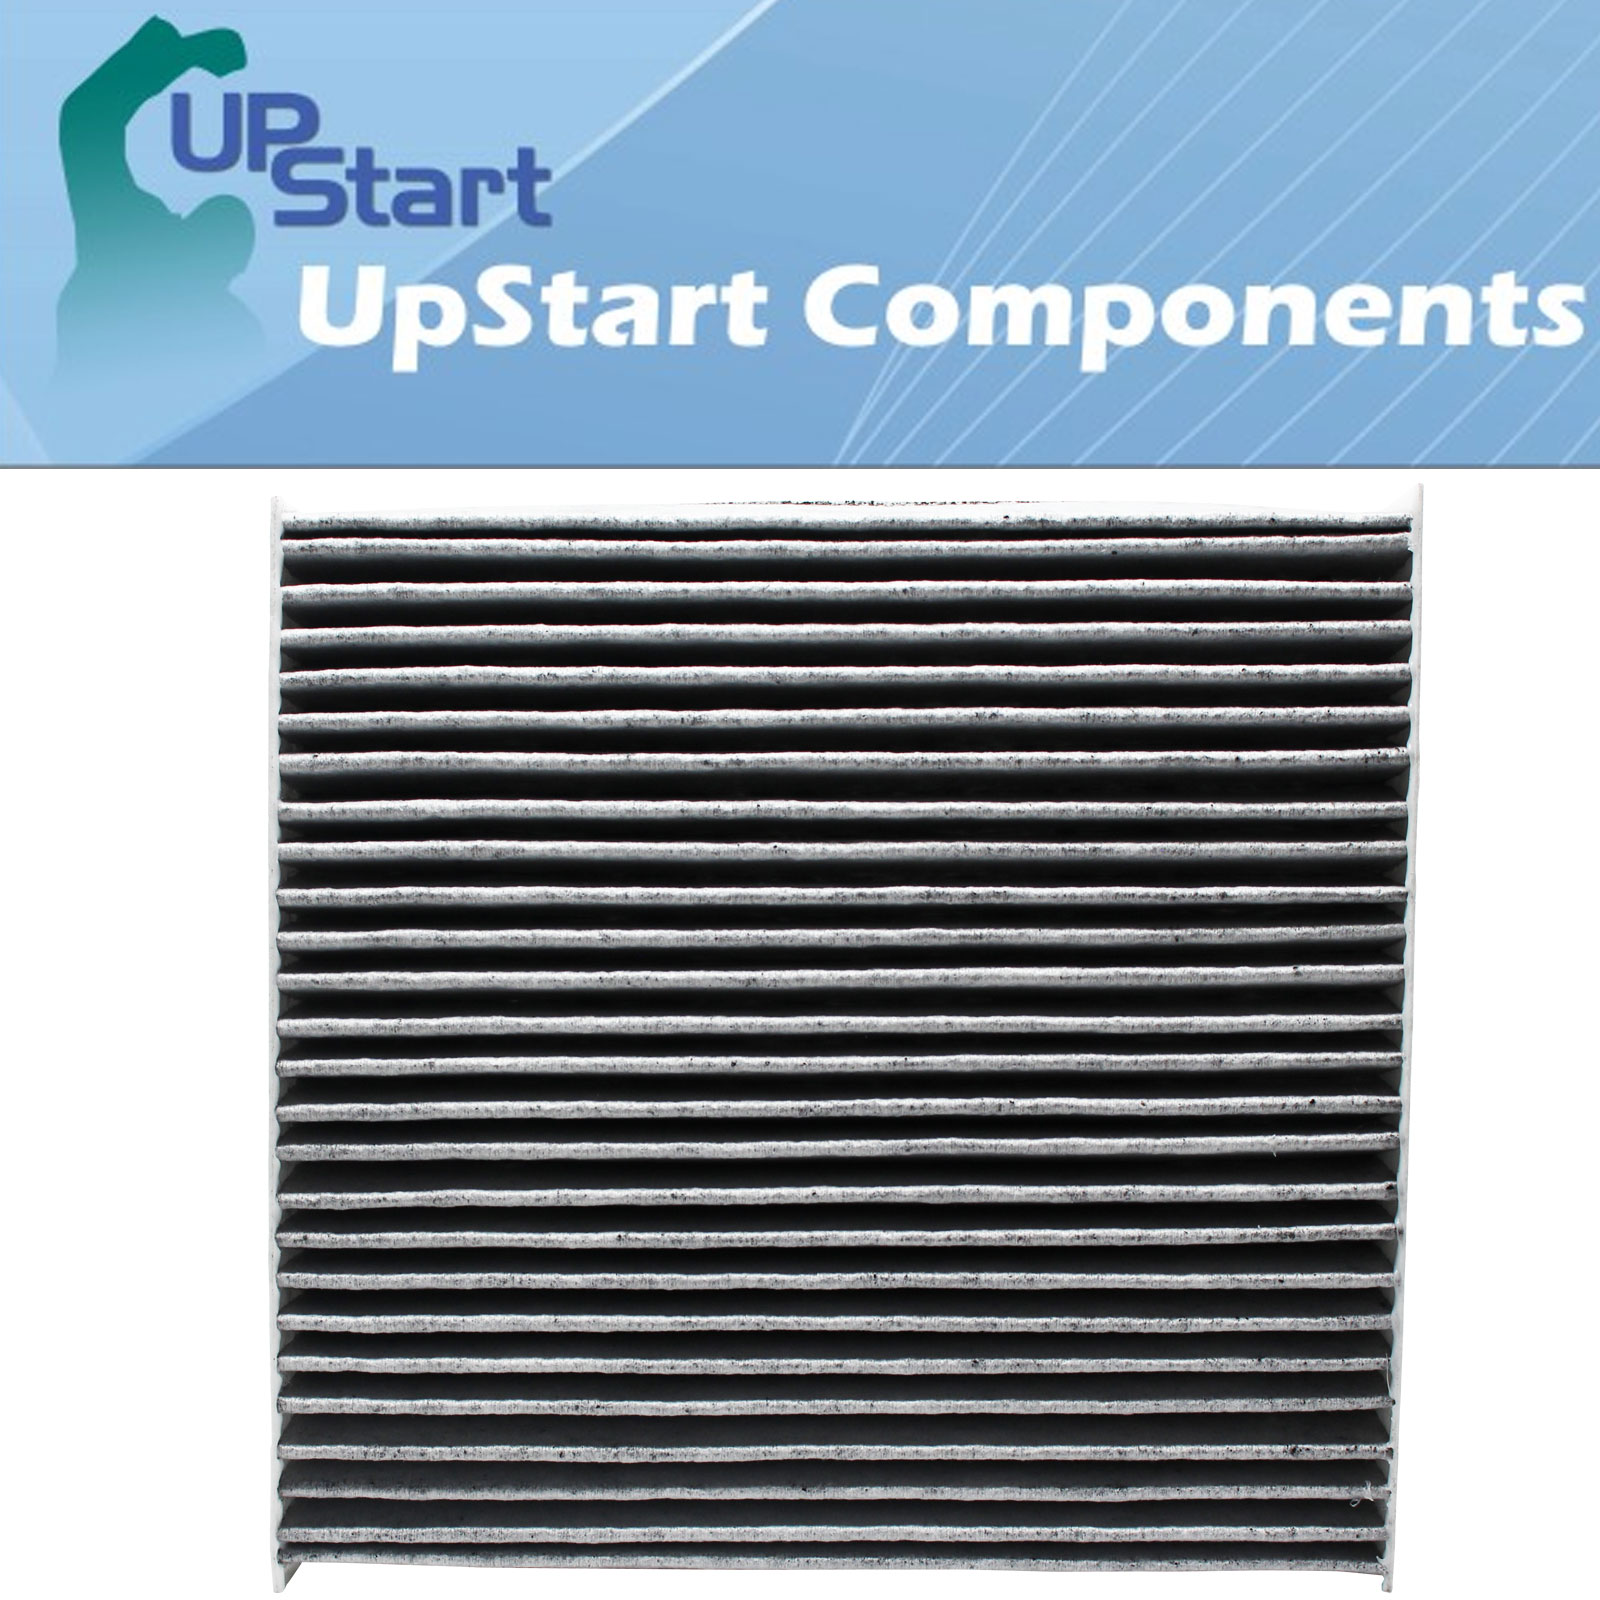 Replacement Cabin Air Filter for 2009 Honda Fit L4 1.5L Car/Automotive - Activated Carbon, ACF-11182